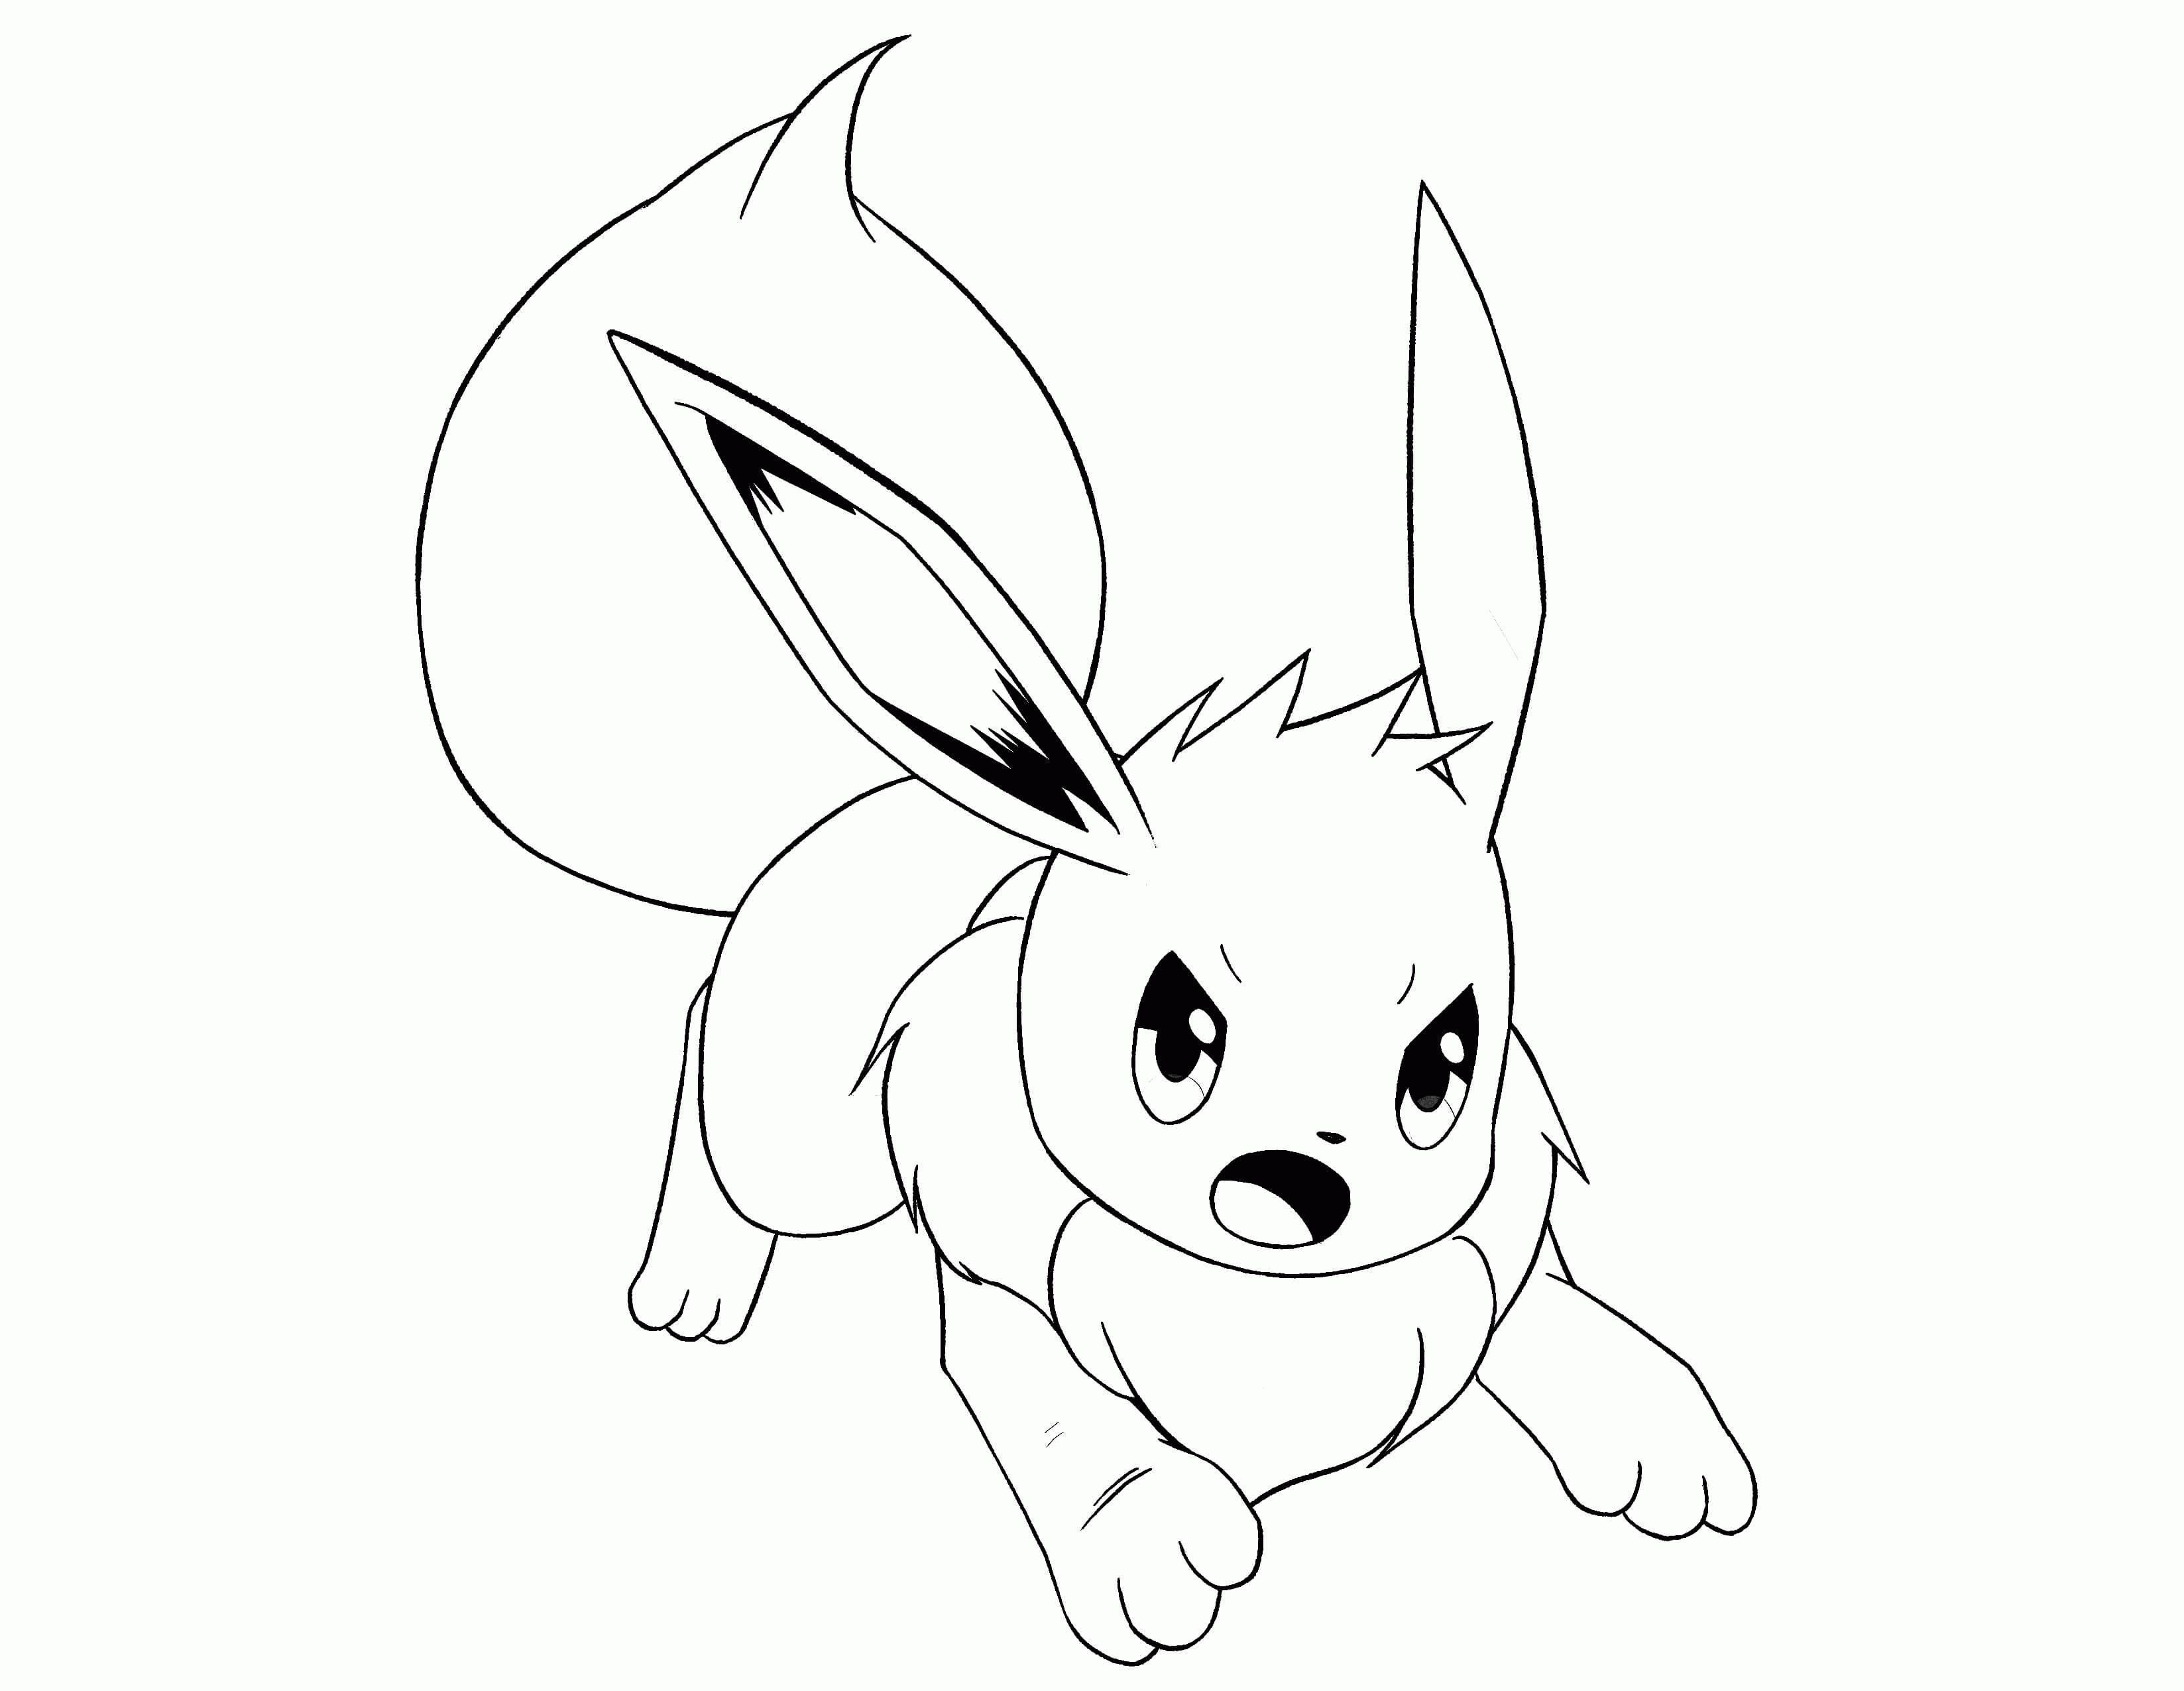 pokemon eevee evolutions coloring pages the best free eevee coloring page images download from pokemon evolutions pages coloring eevee